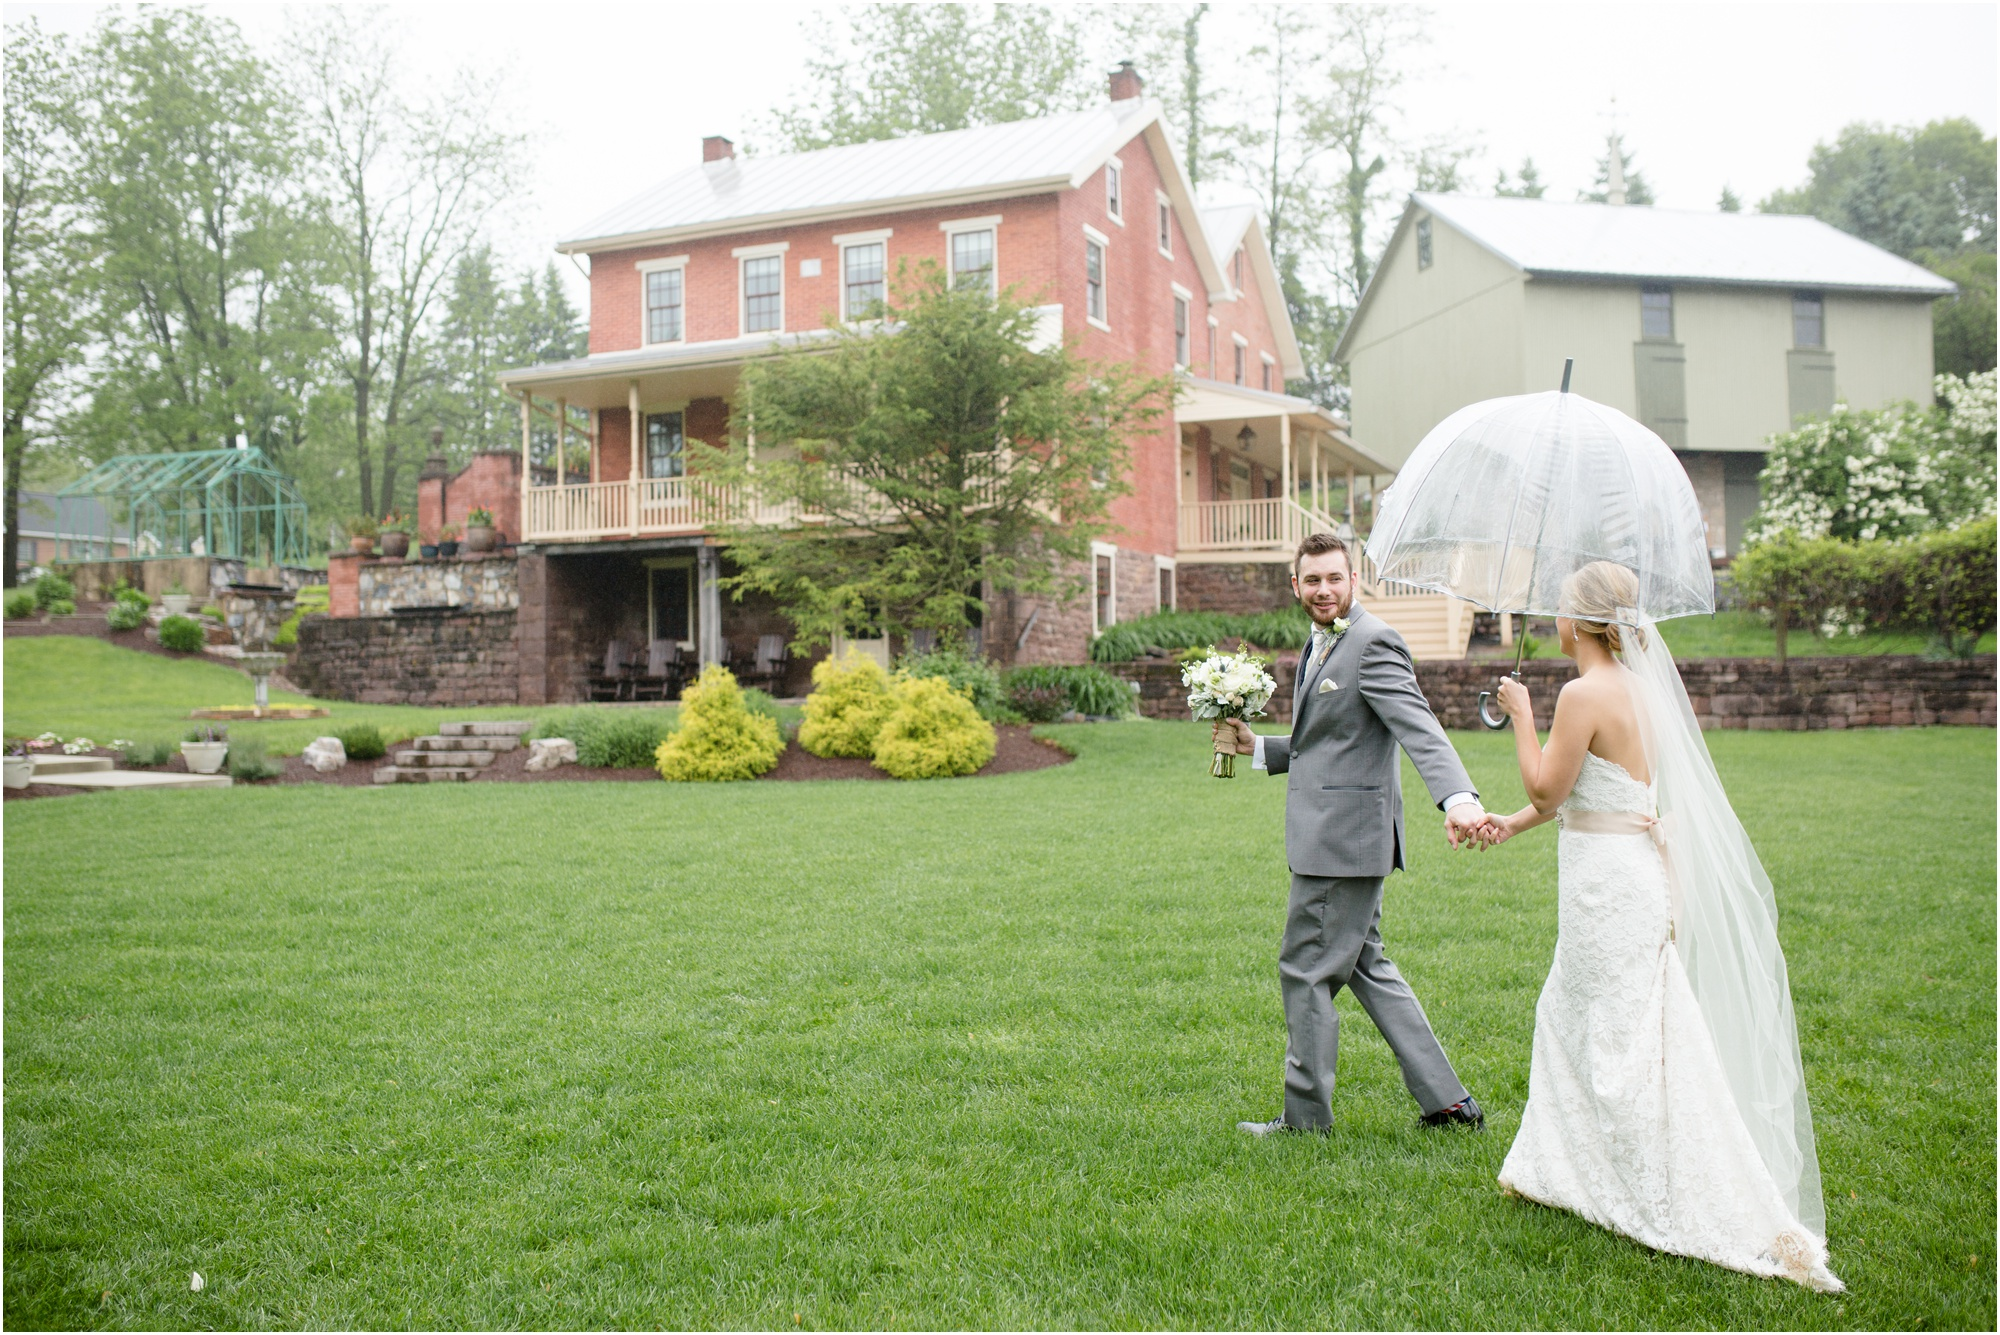 Rain On Your Wedding Day.How To Prepare For Rain On Your Wedding Day Leigh G Photography